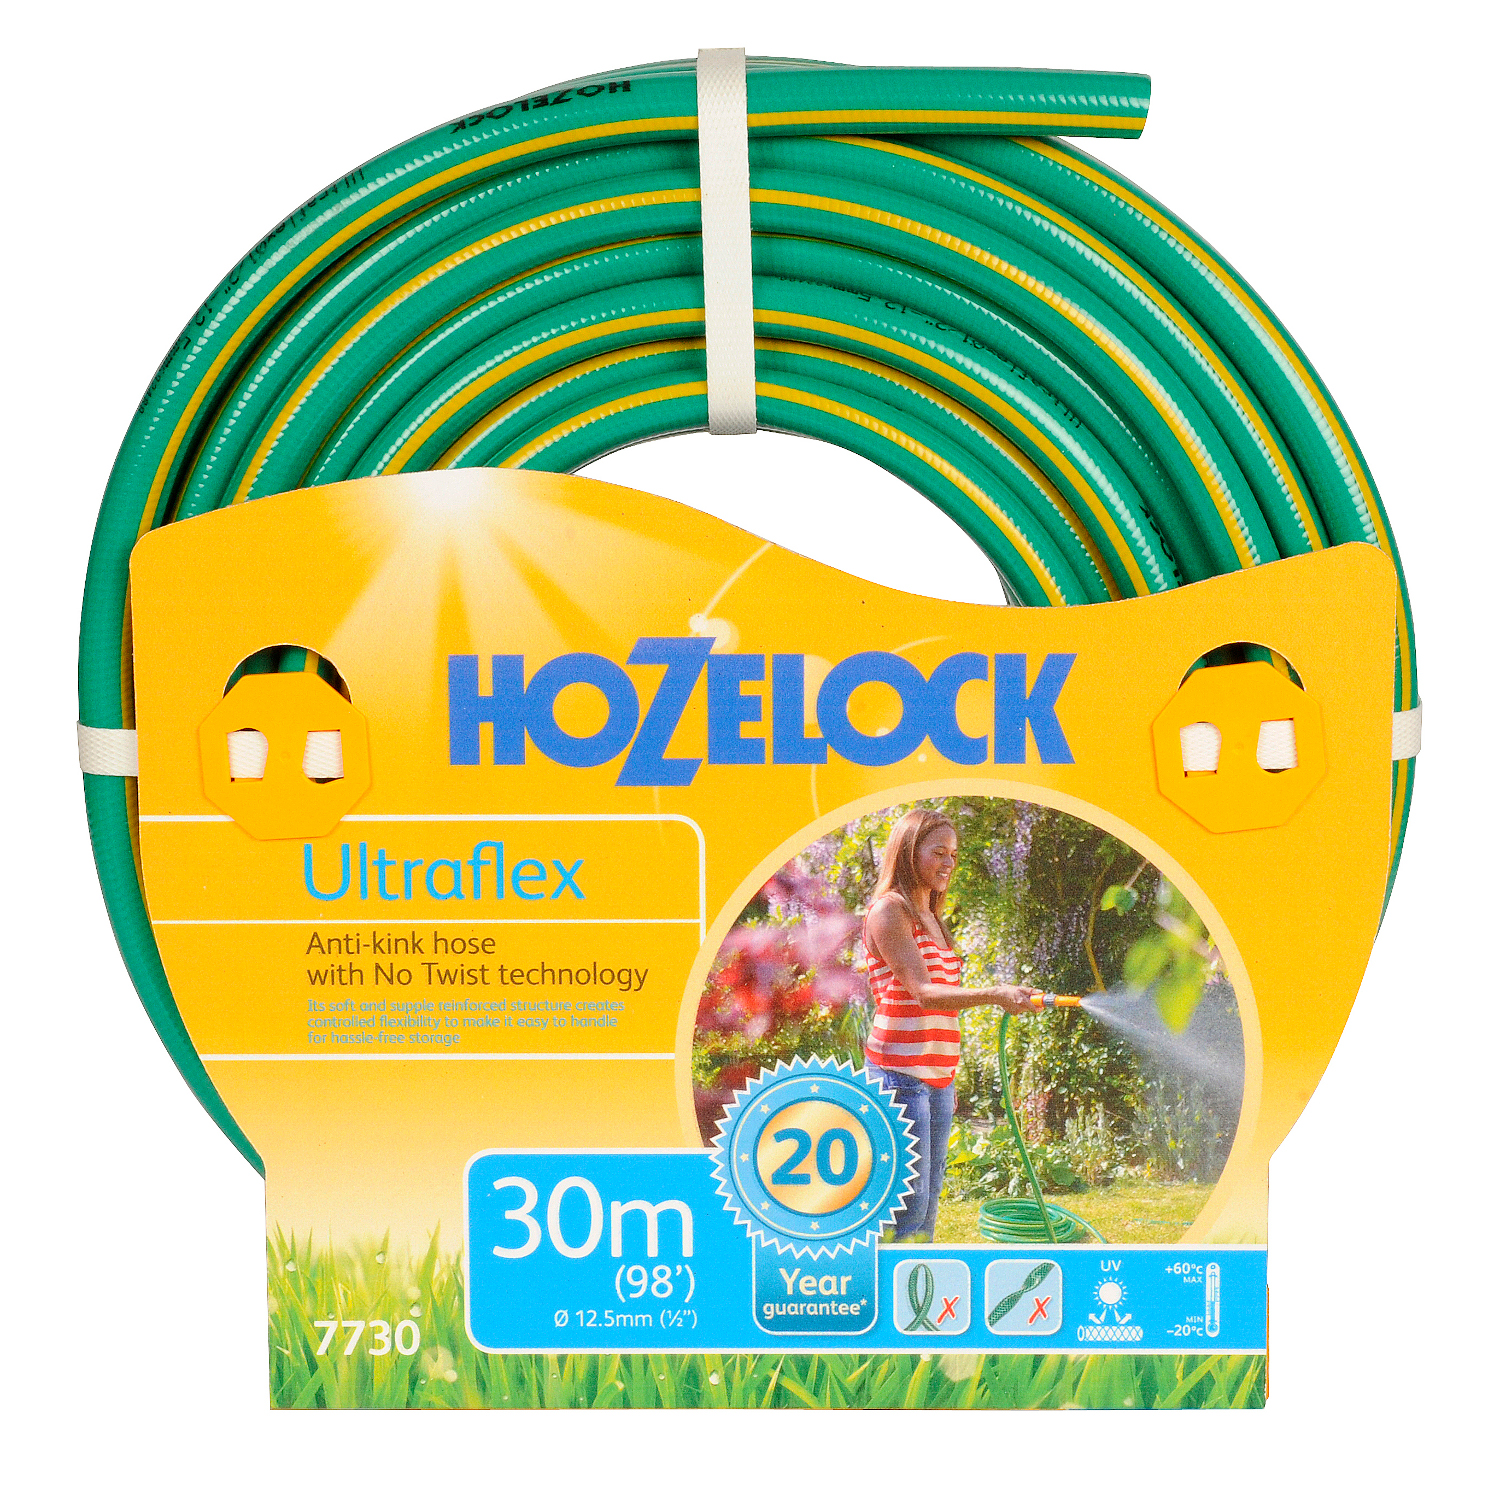 Hozelock 30m ultraflex hose garden4less uk shop for Gardening 4 less reviews